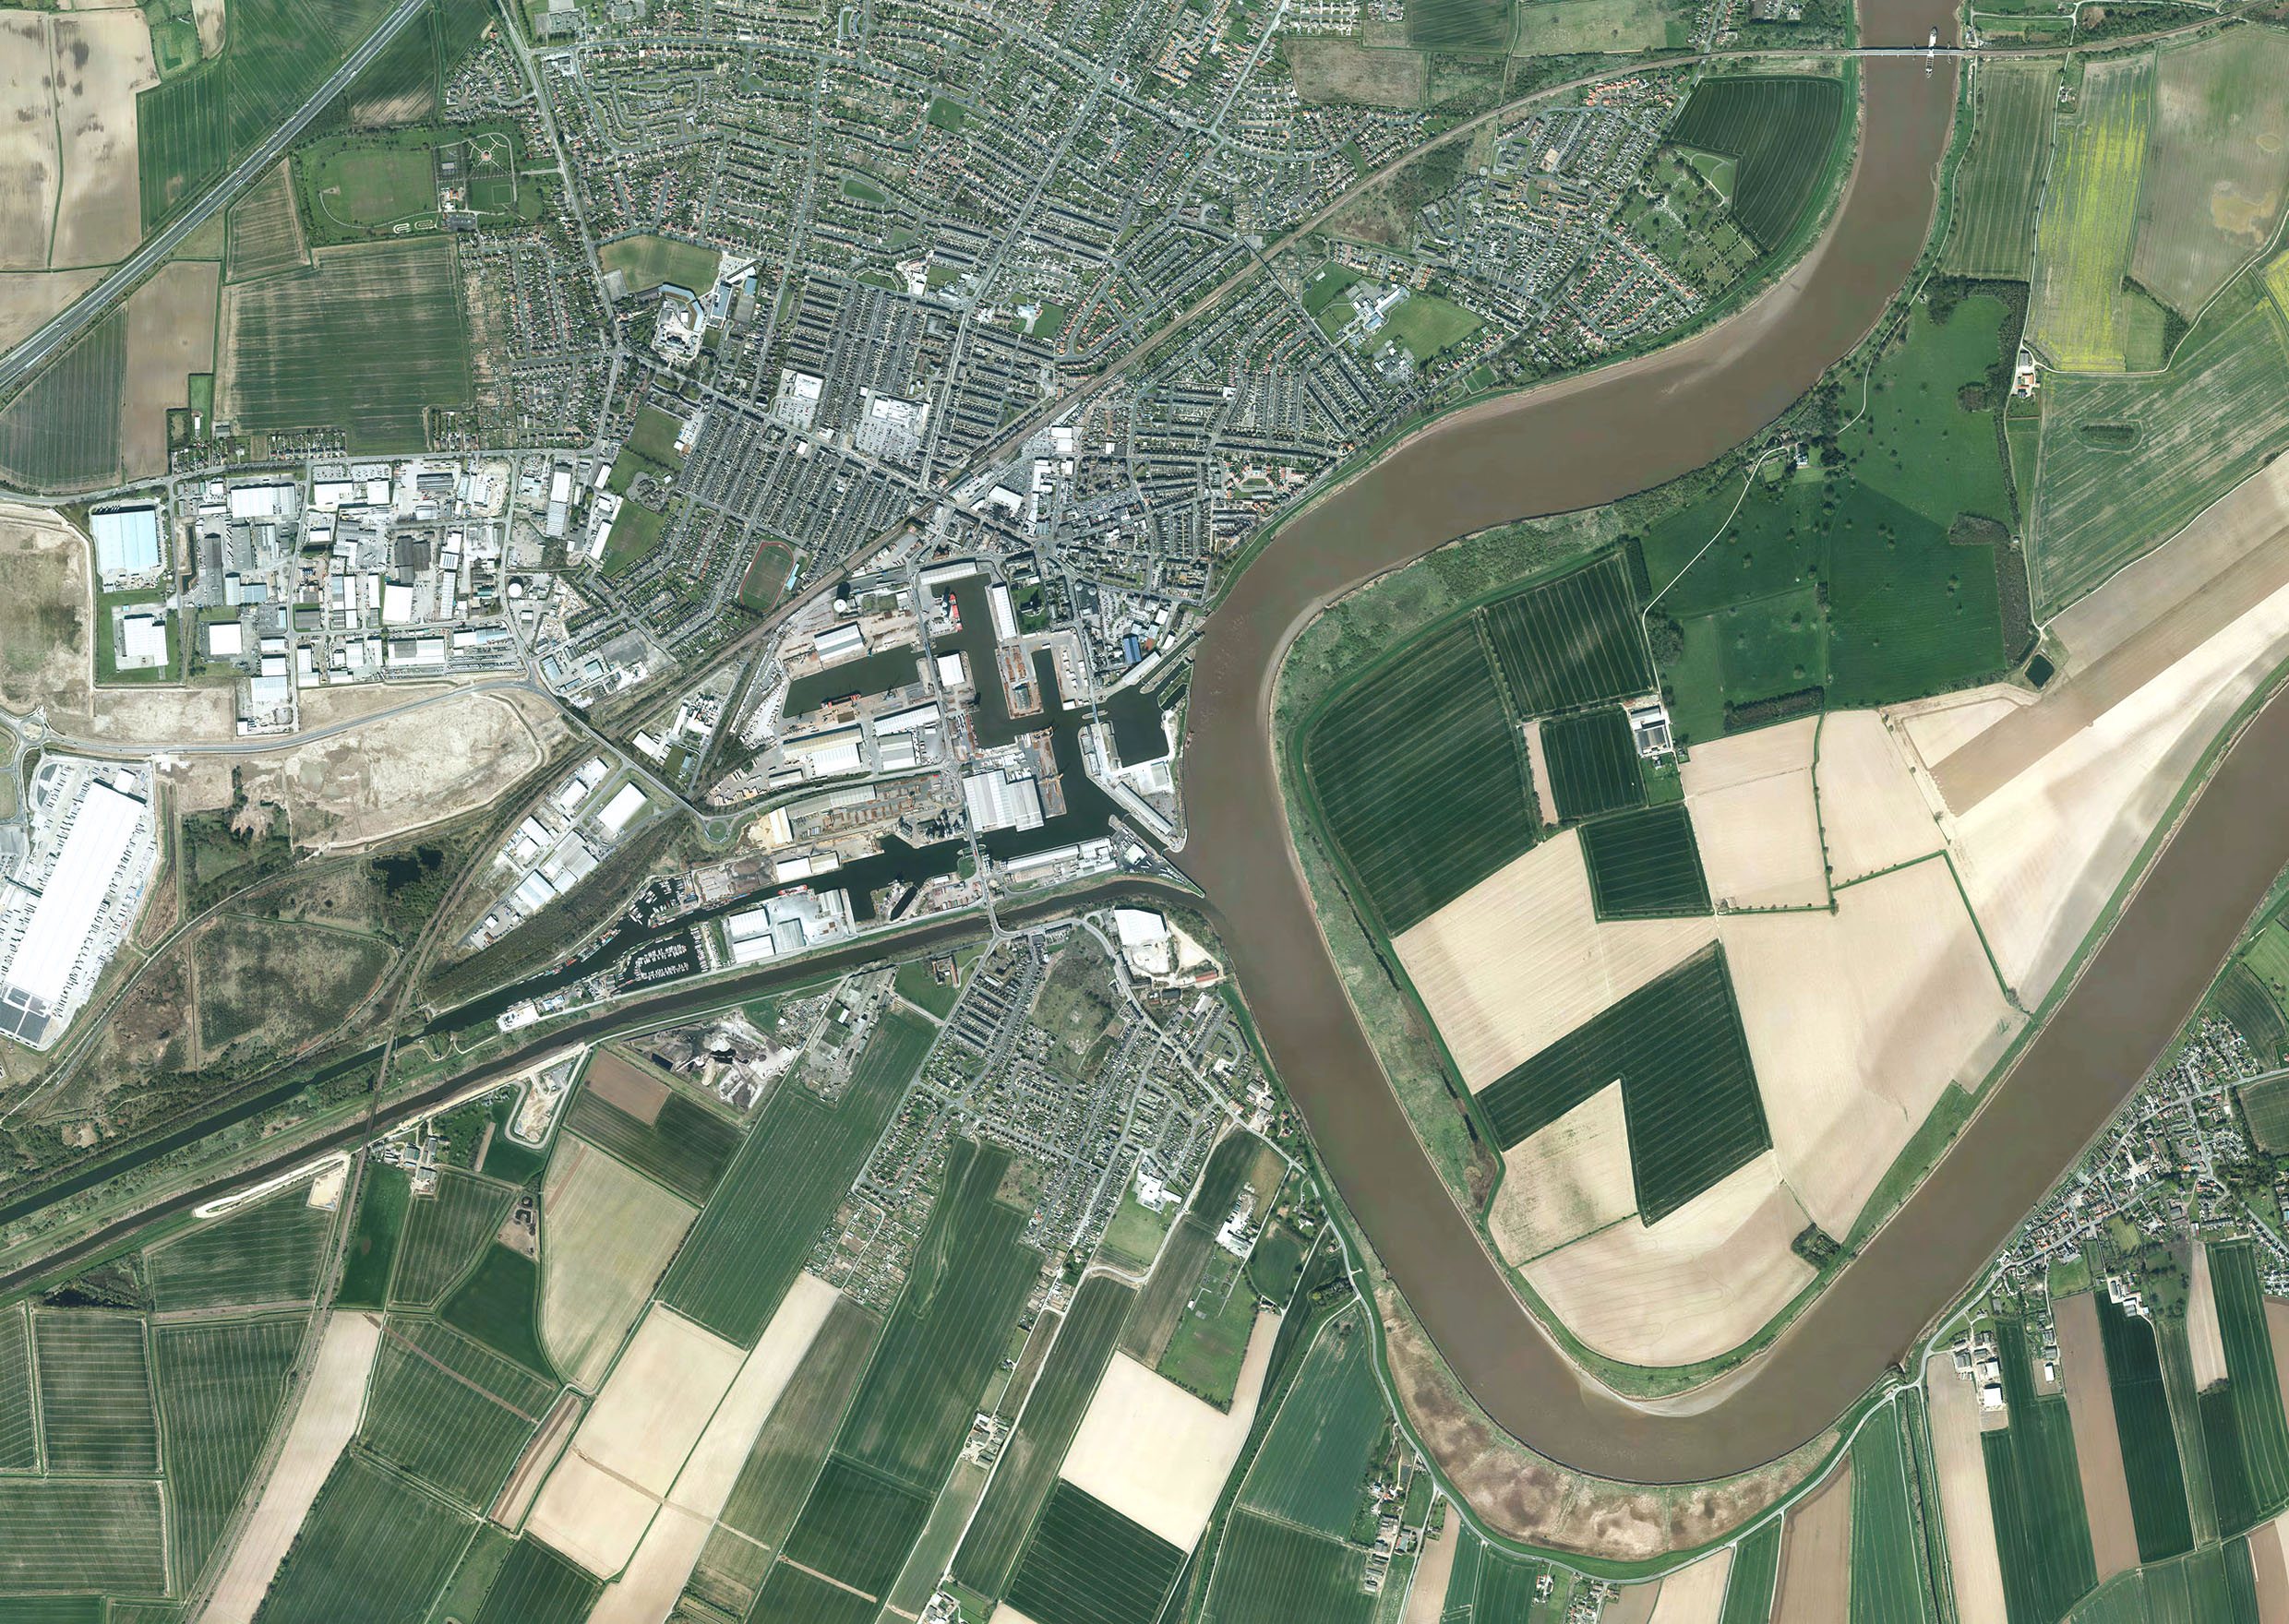 high-resolution aerial imagery contract signed between Bluesky and Yorkshire Water